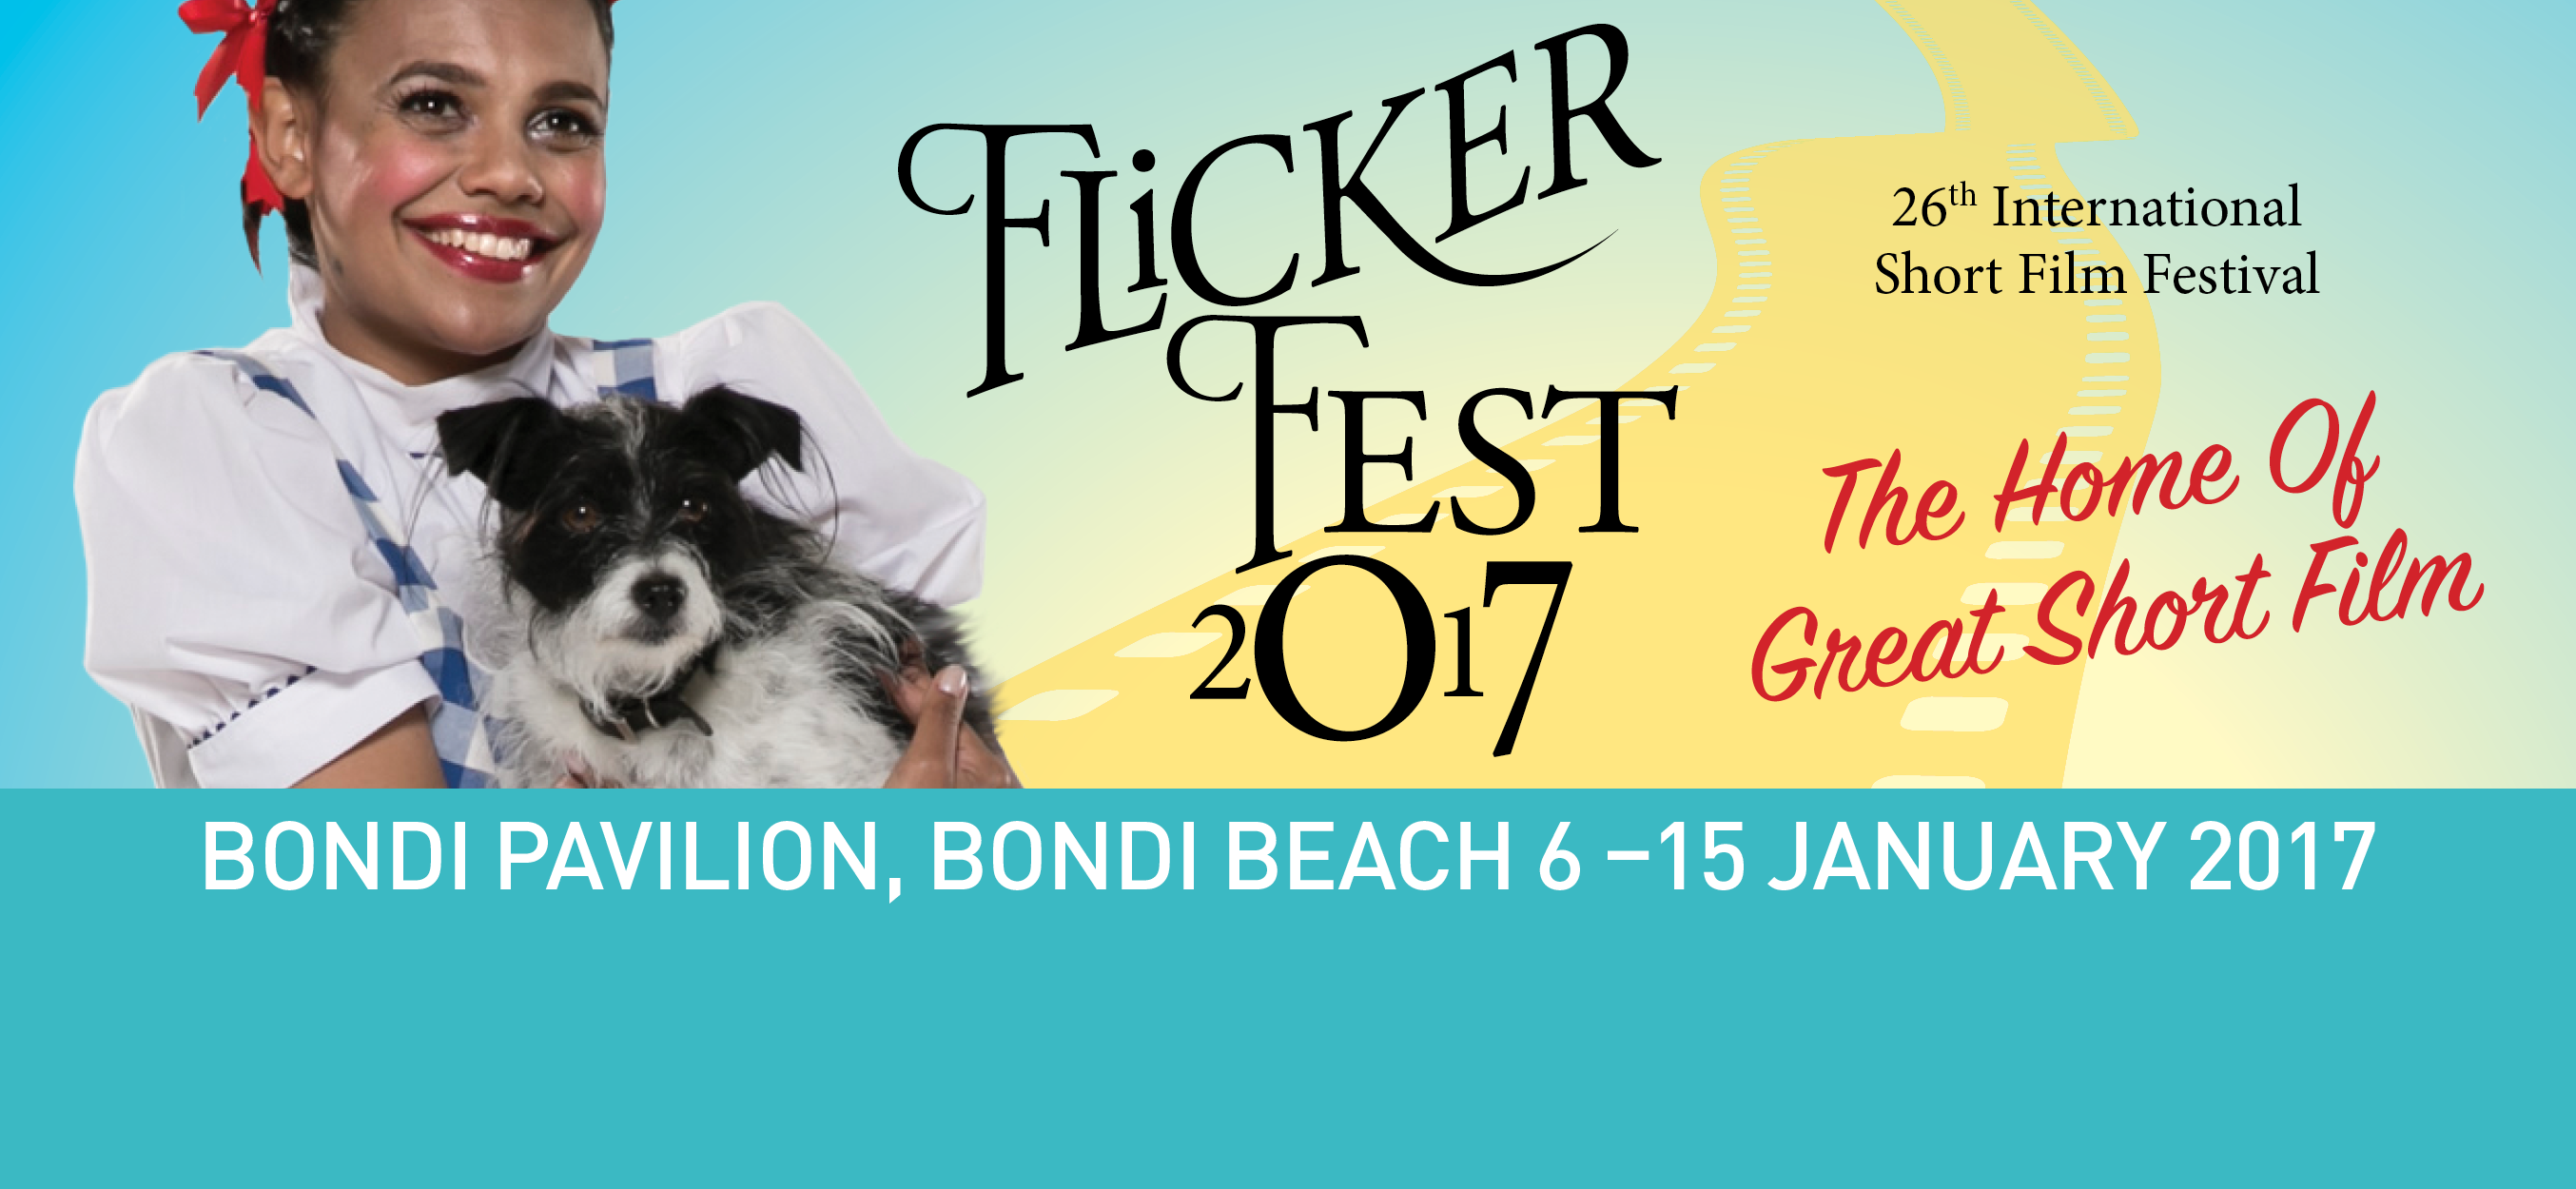 Add Flickerfest To Your Quintessential Sydney Summer To-Do List!